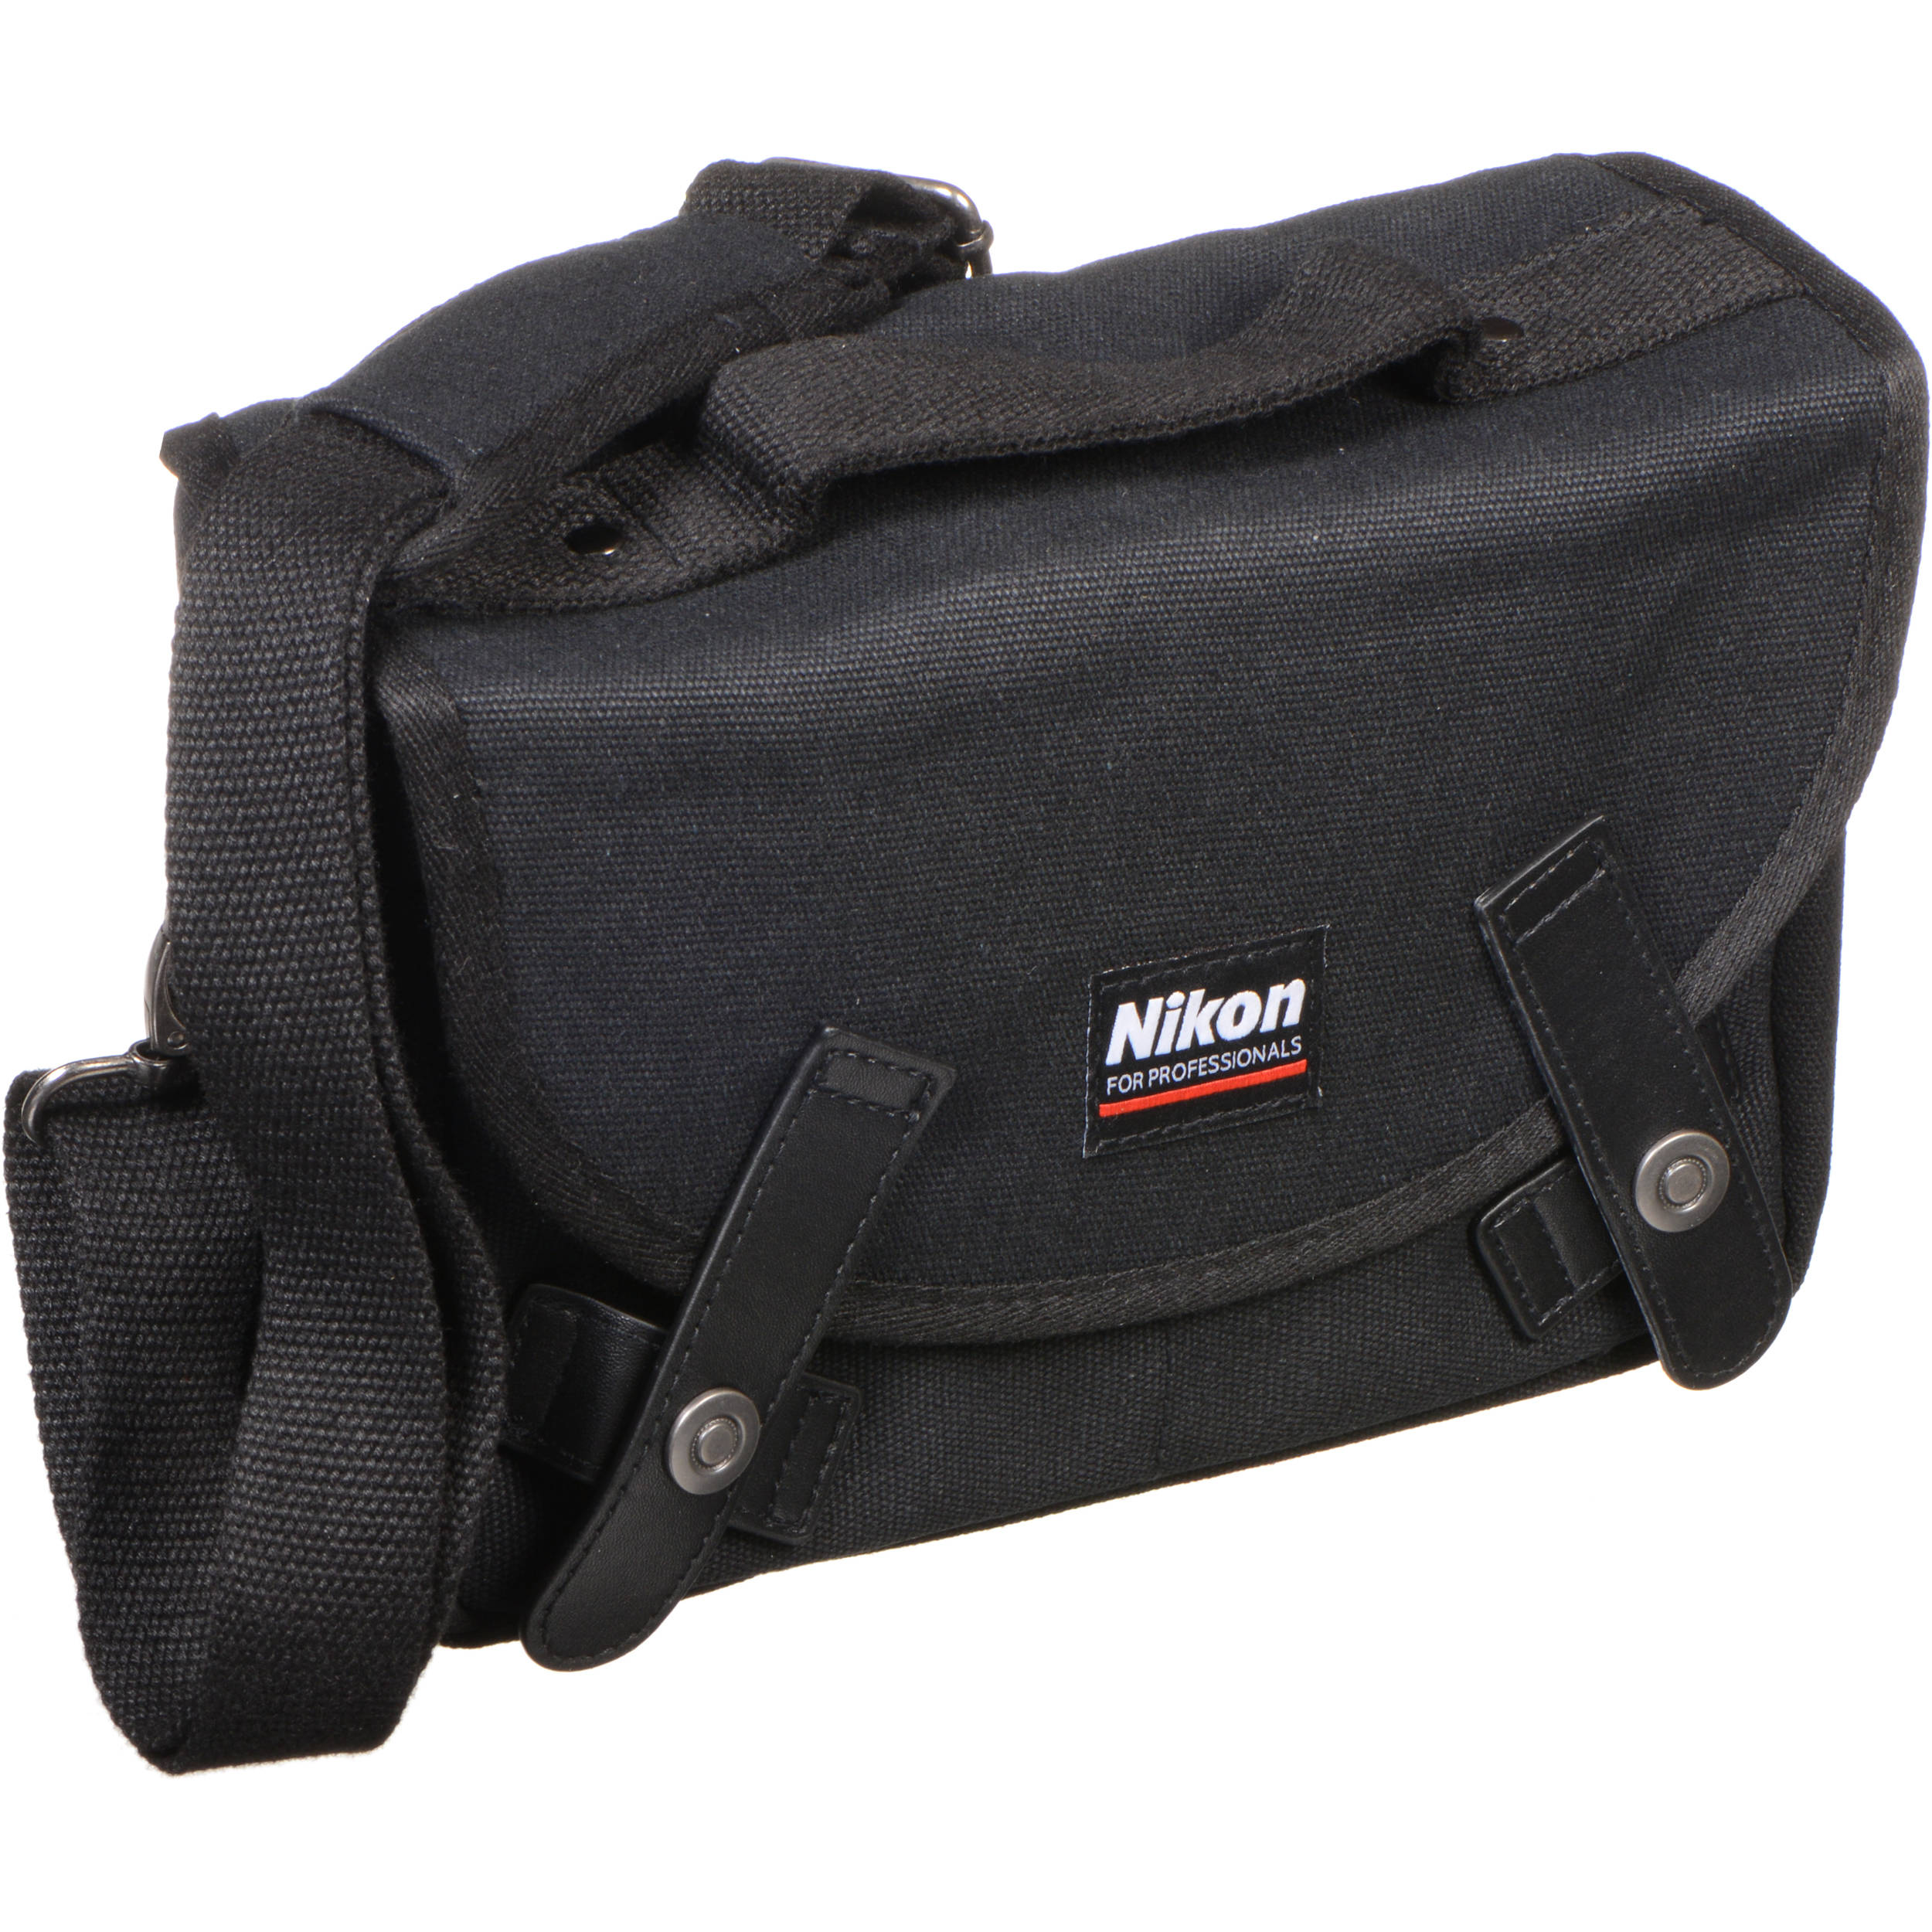 Nikon Compact Dslr Or Mirrorless Camera Bag Black